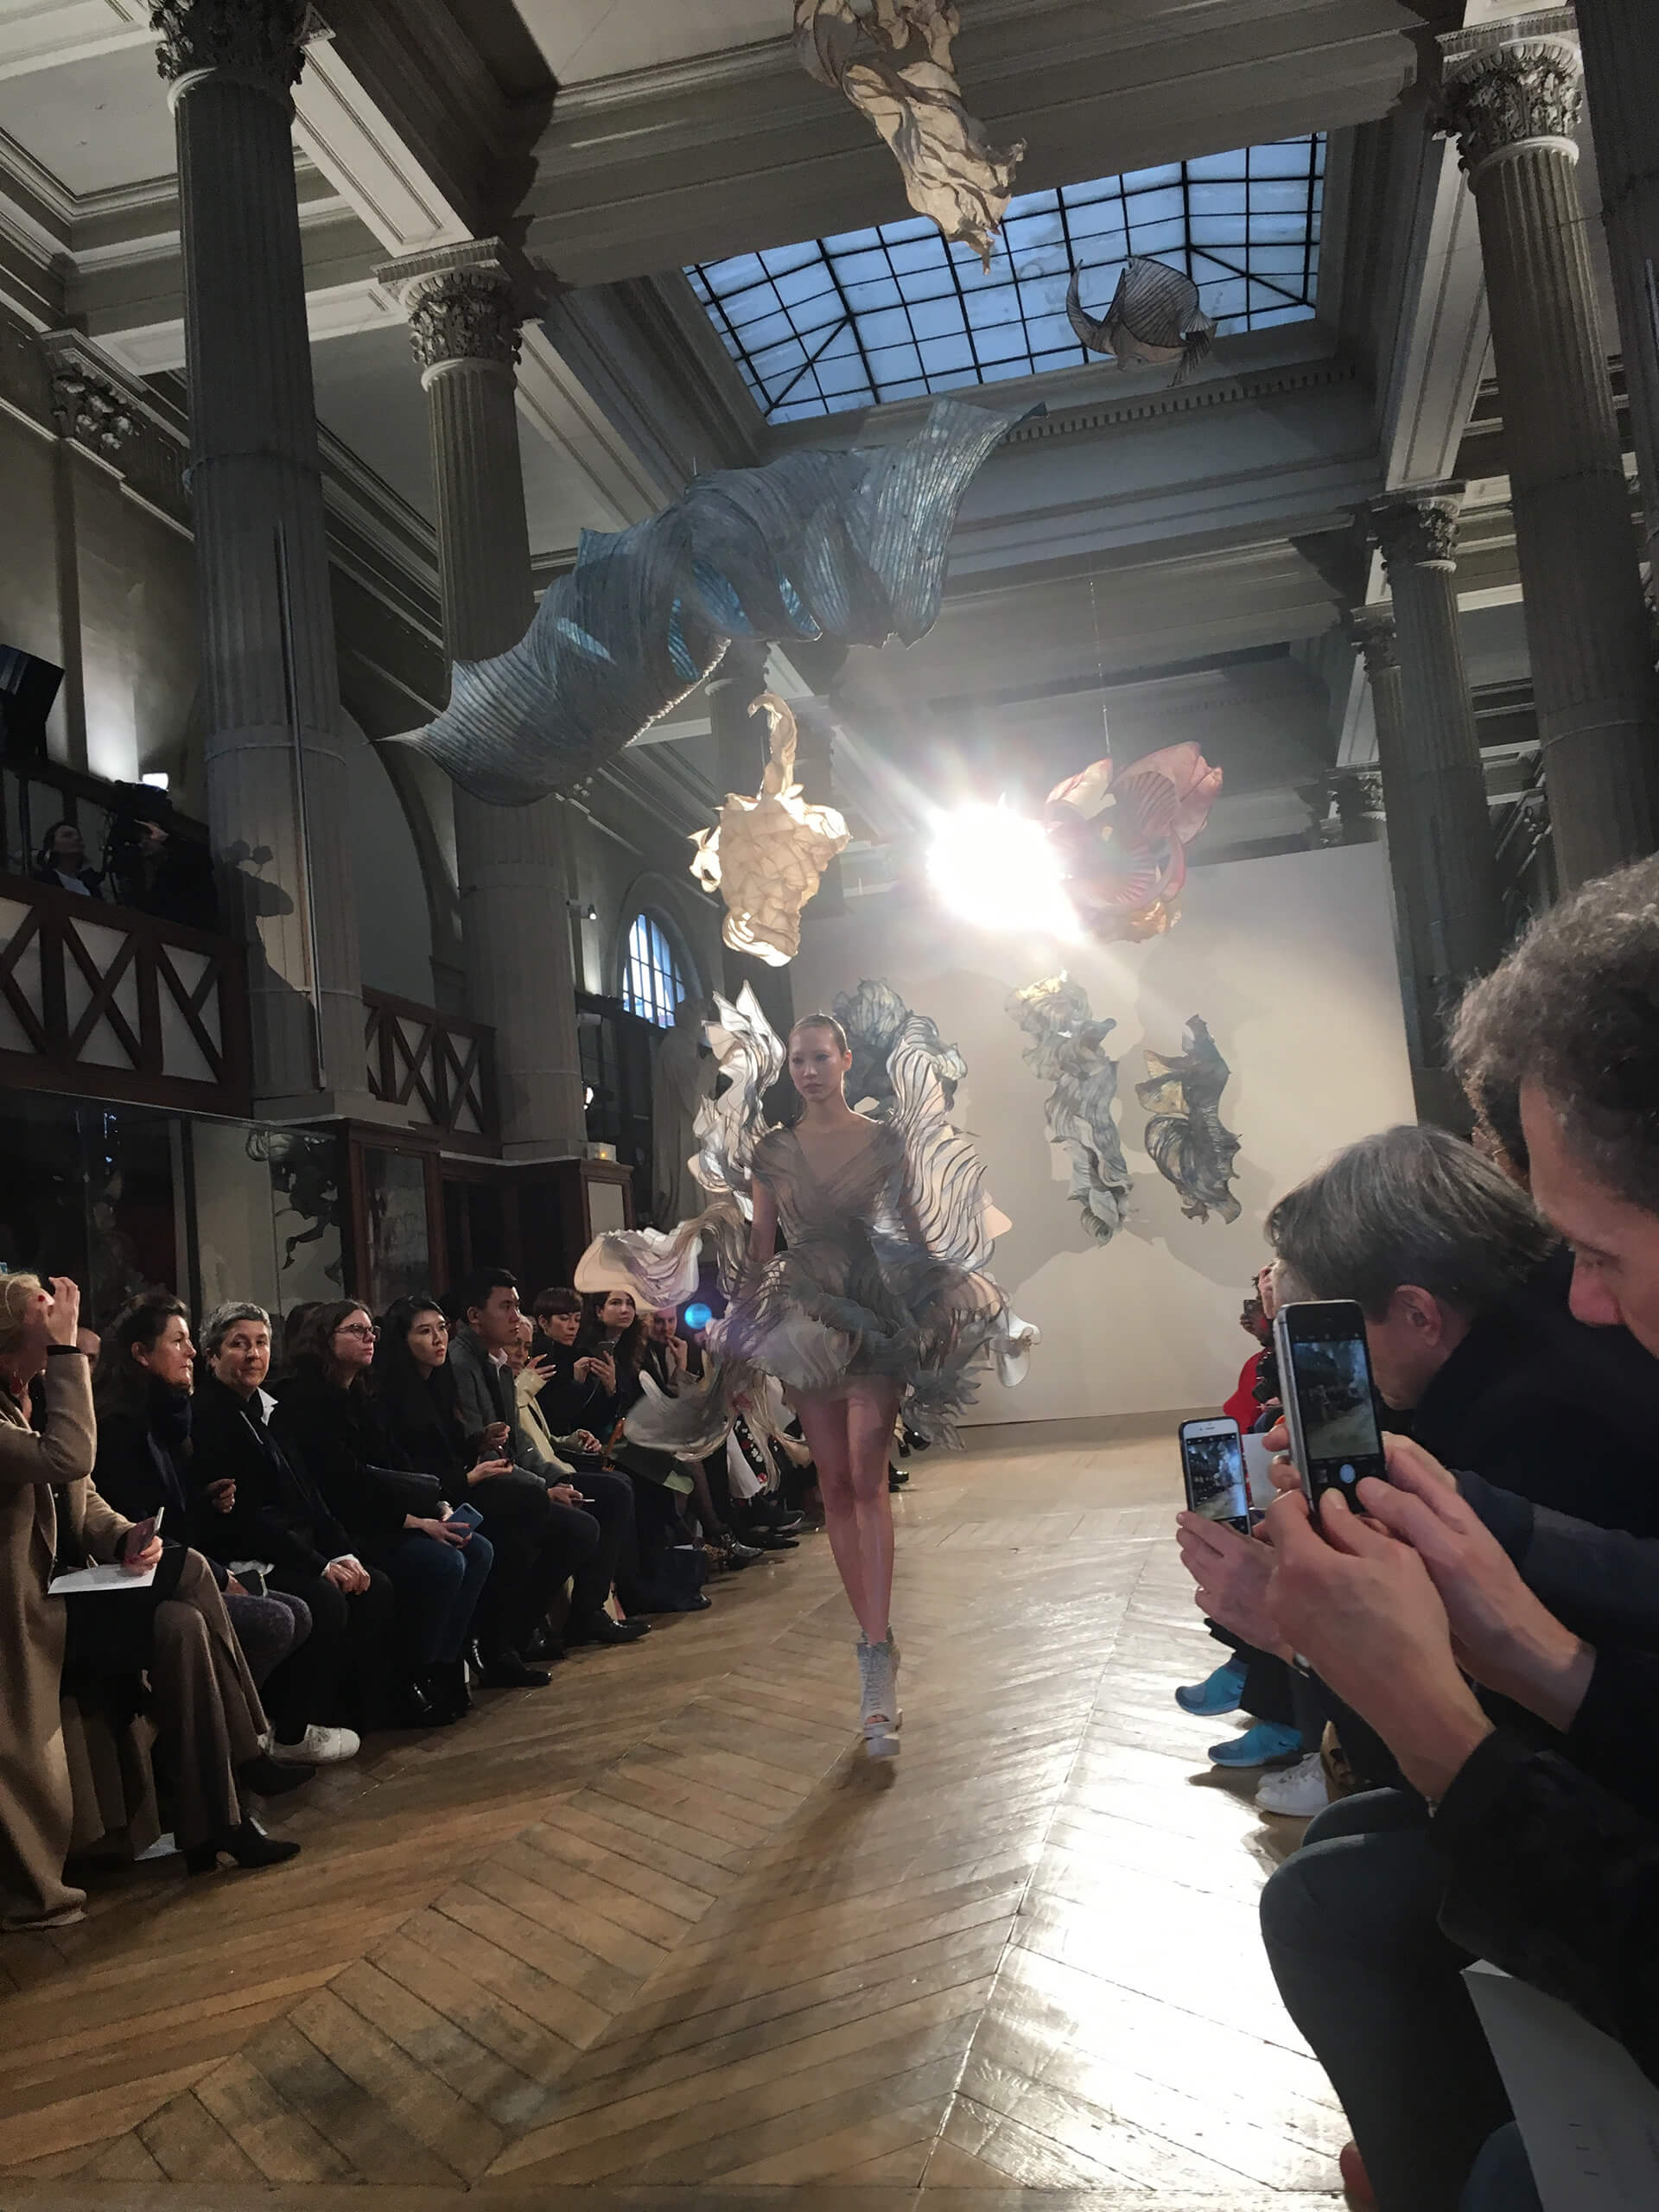 A visual of the runway exhibition underway in 2018 featuring van Herpen's designs as well as Gentenaar's installations | Iris van Herpen | Peter Gentenaar | STIRworld